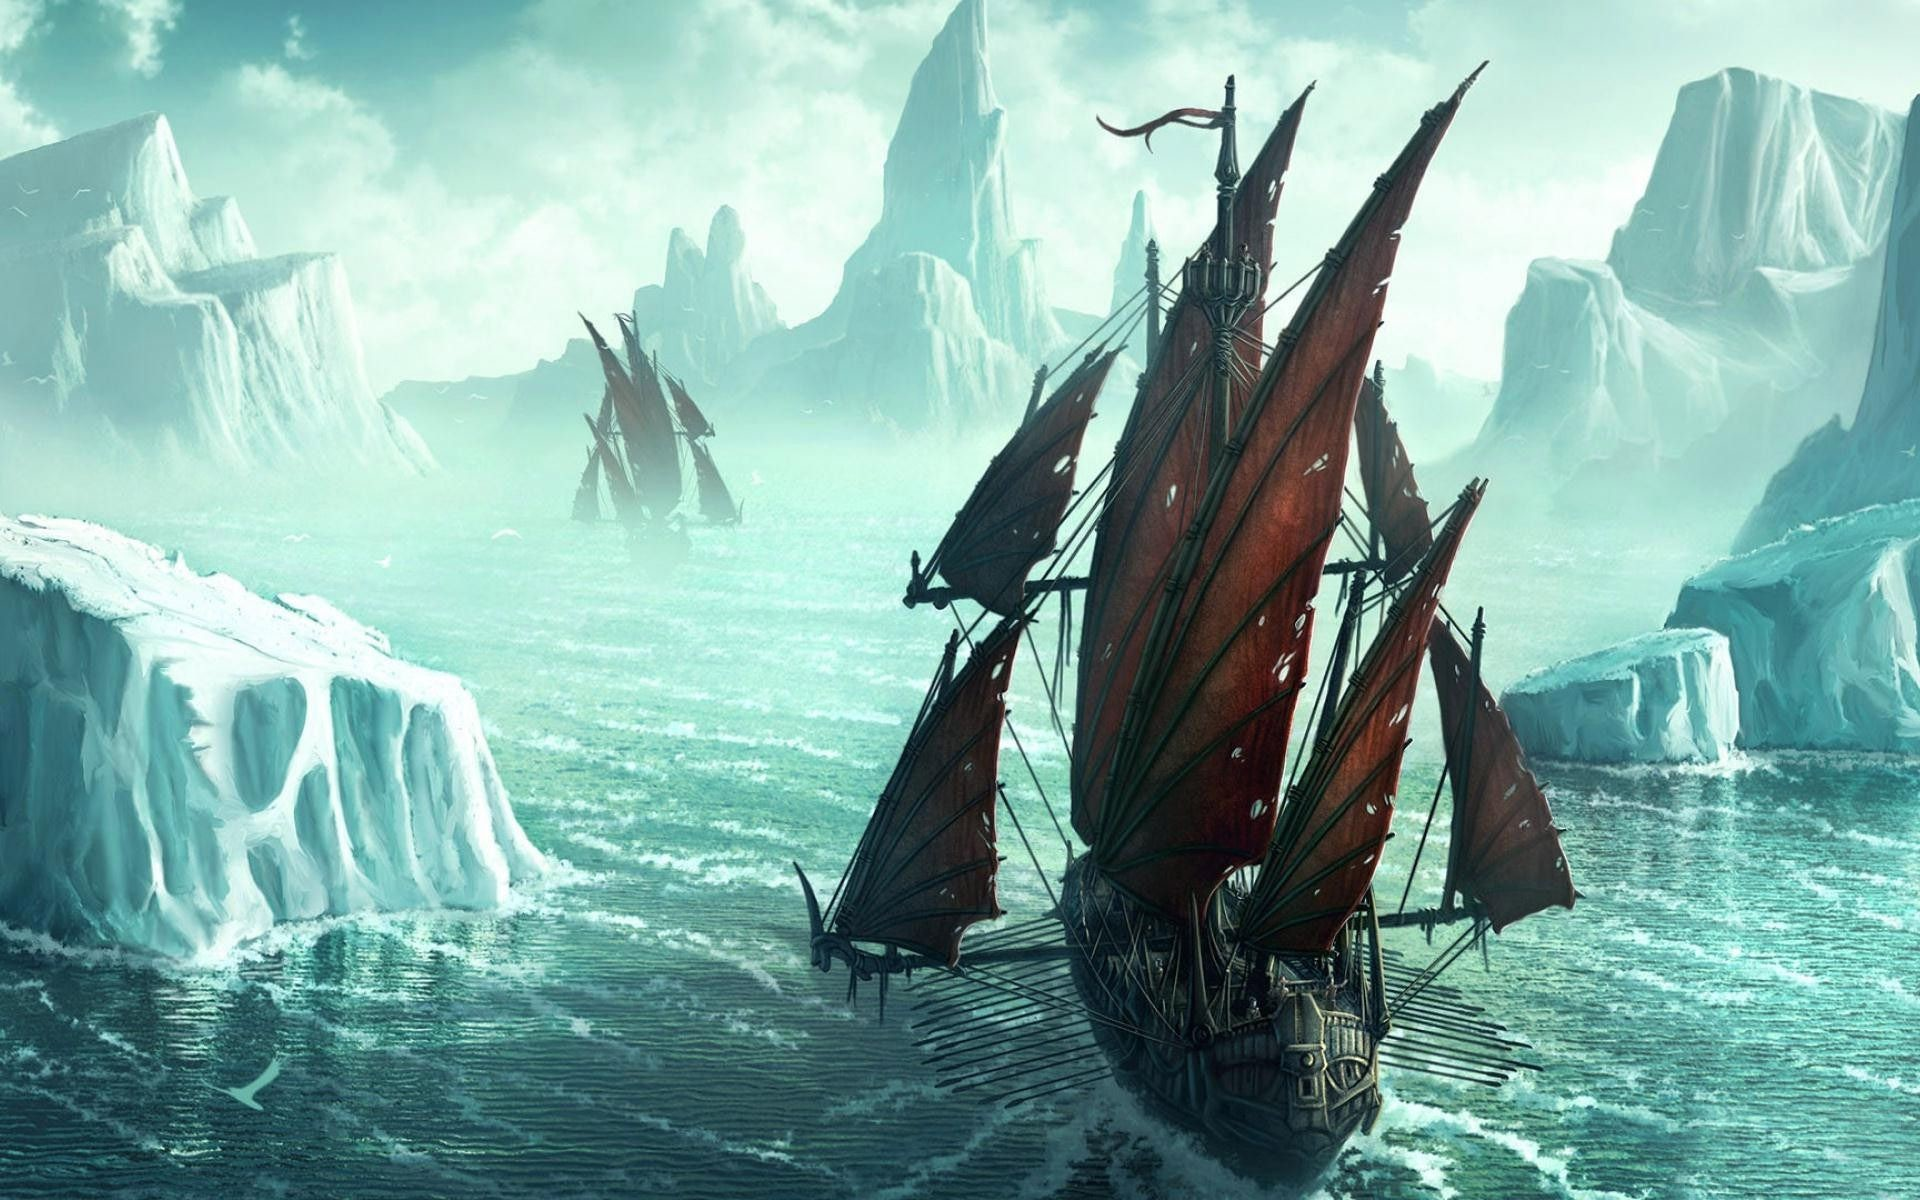 Pirate ship wallpaper 82 images - Pirate background ...